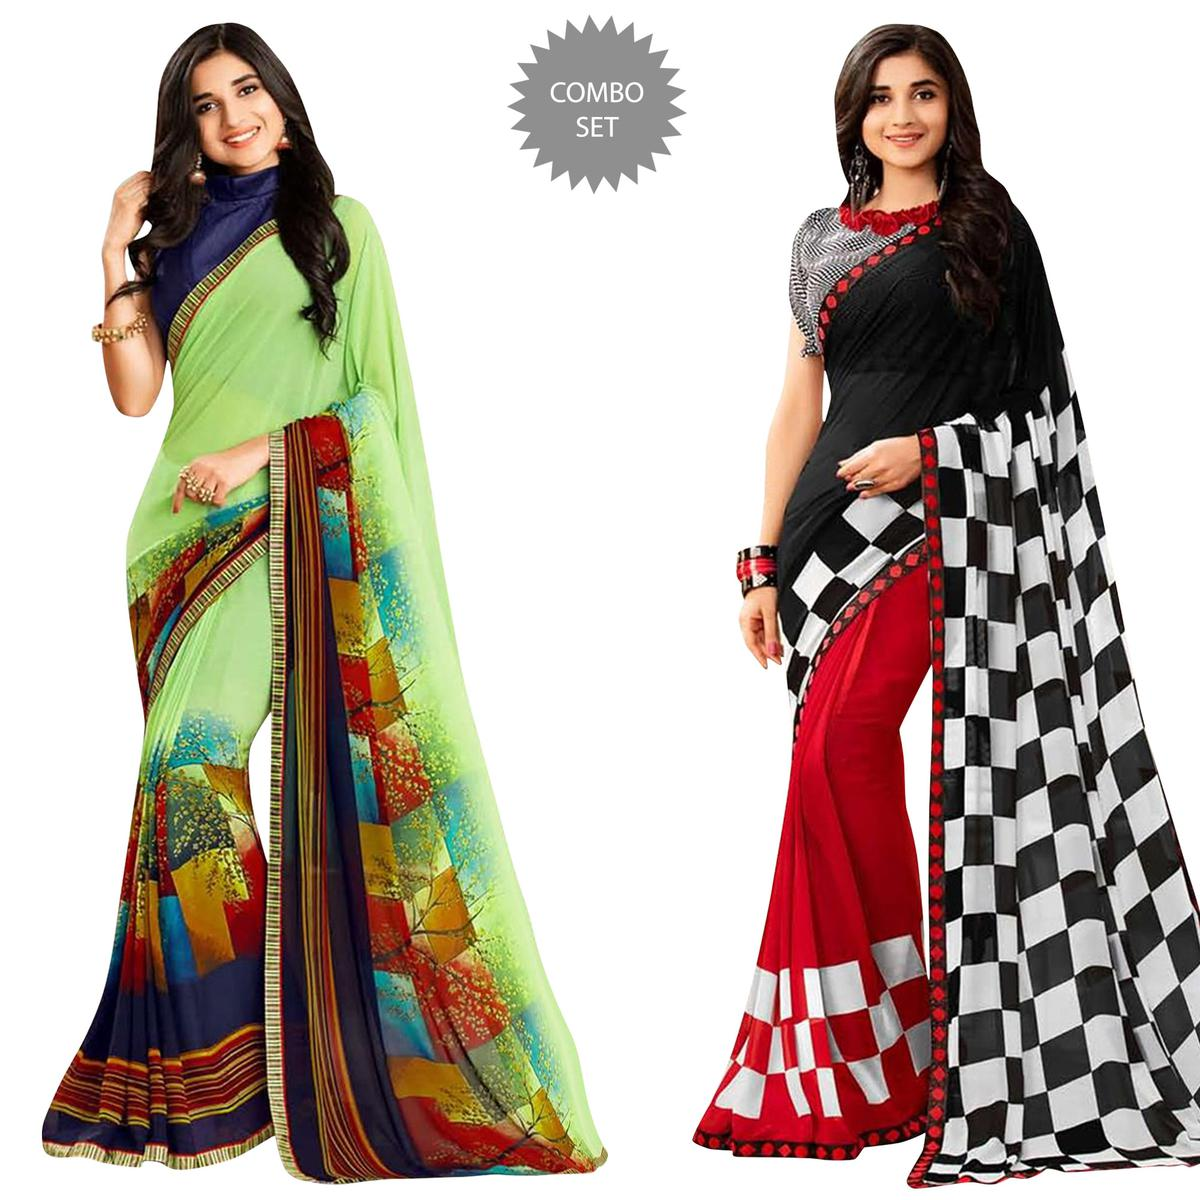 Classy Casual Printed Georgette Saree - Pack of 2